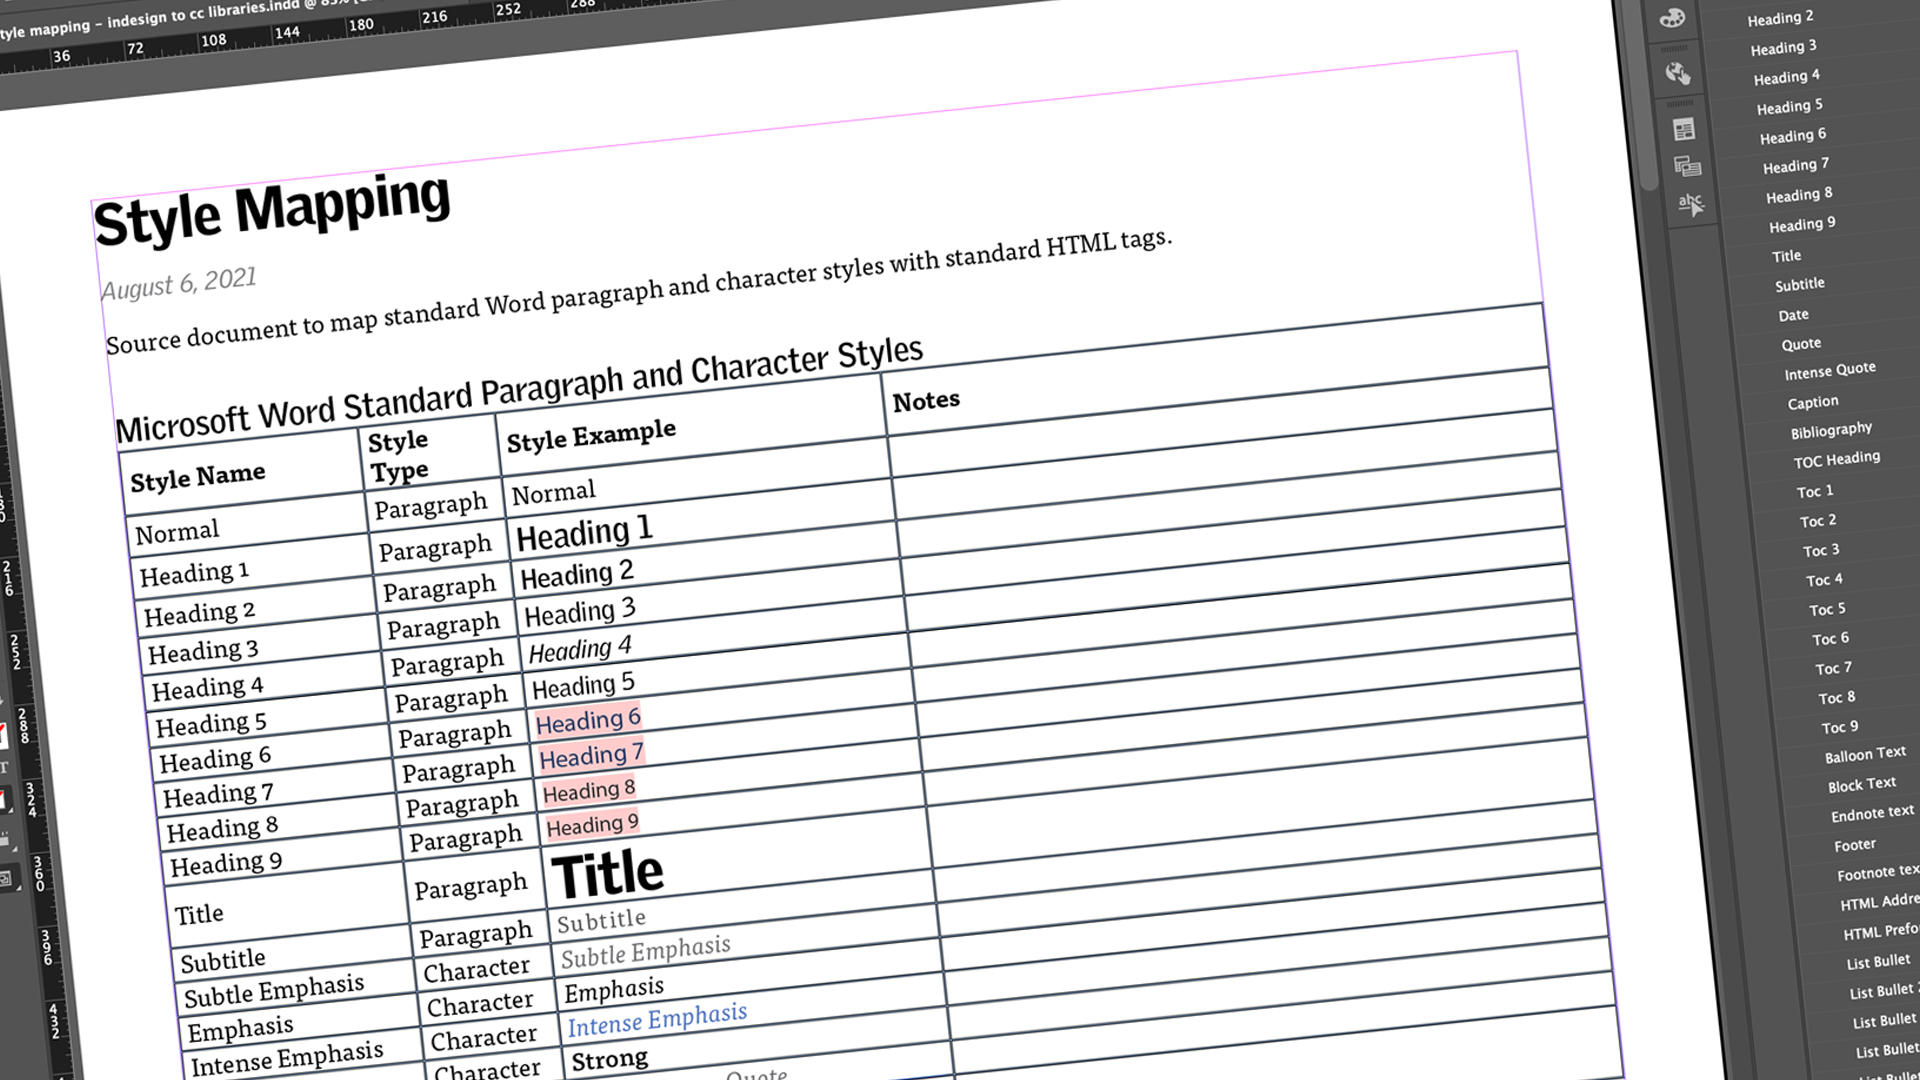 An InDesign file listing all the standard Microsoft Word paragraph and character styles imported into and defined in InDesign with examples.